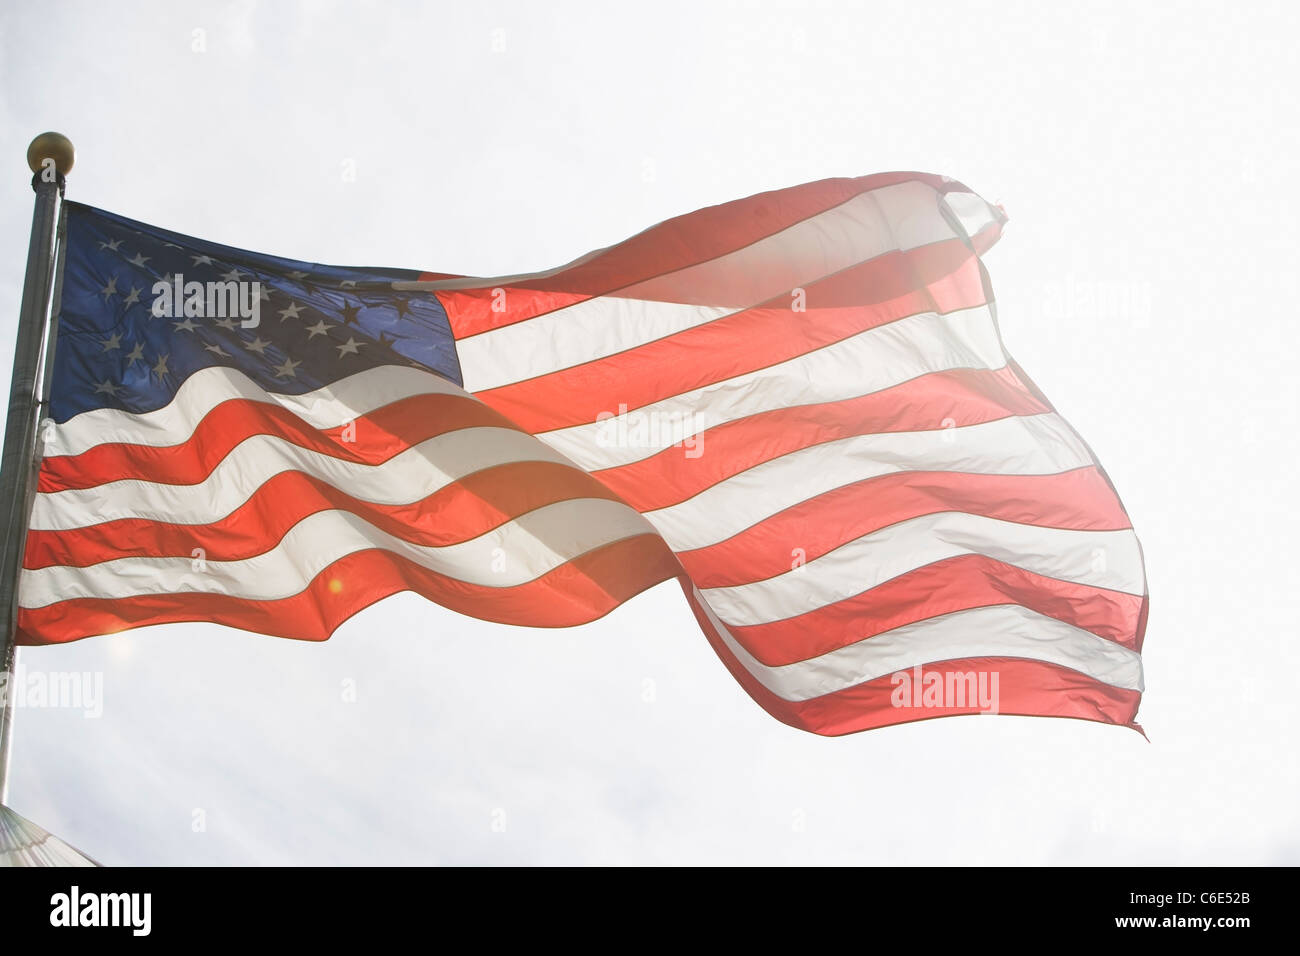 USA, New York State, New York, American flag against sky Banque D'Images